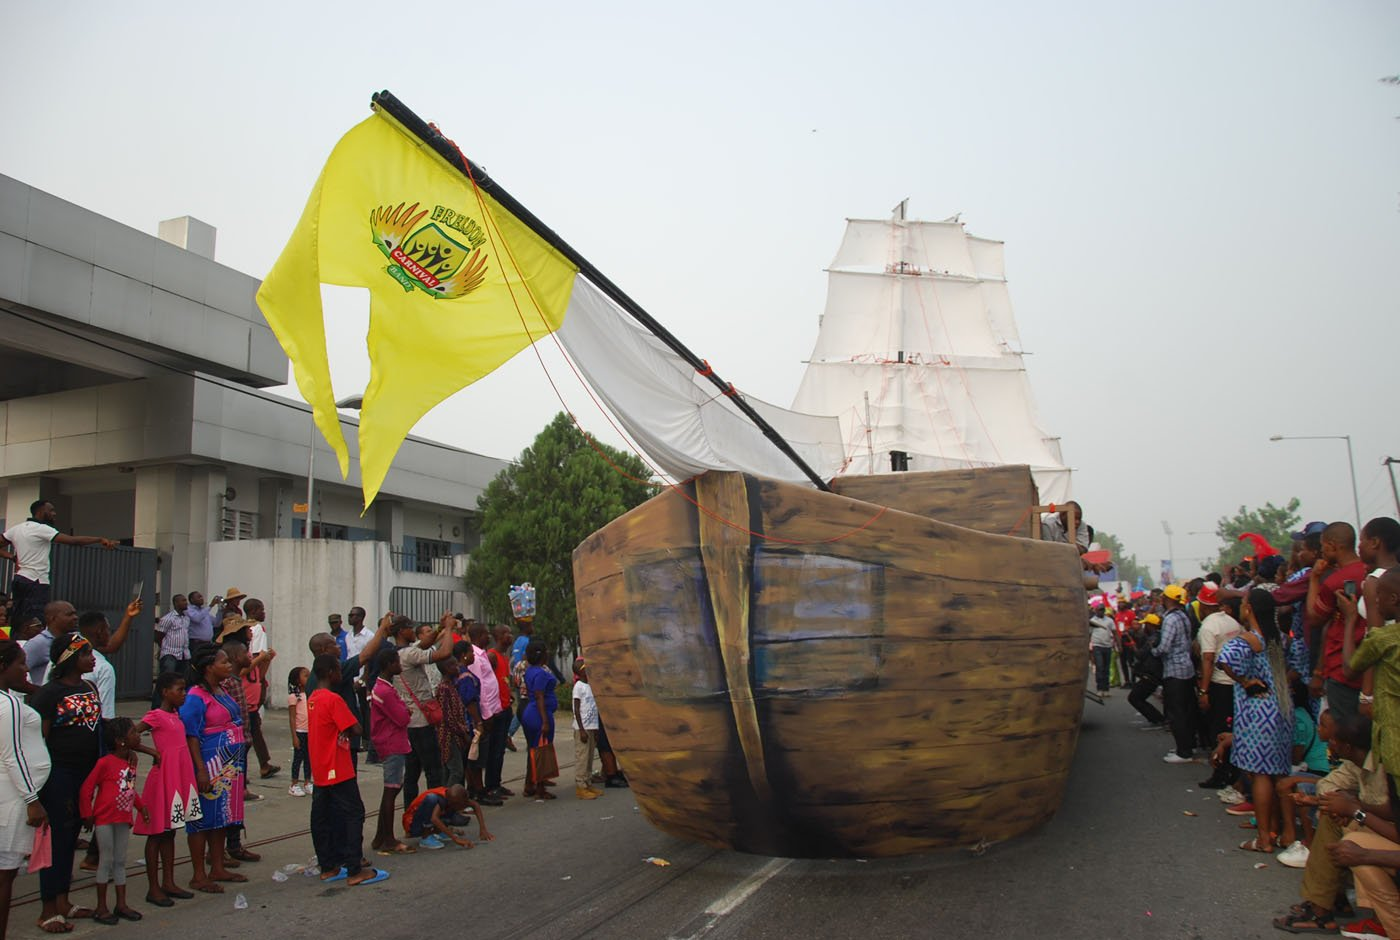 A Dummy Ship Designed by Freedom Band during the Main Event of the 2017 Carnival Calabar in Cross River State Yesterday. Photo: Nwankpa Chijioke